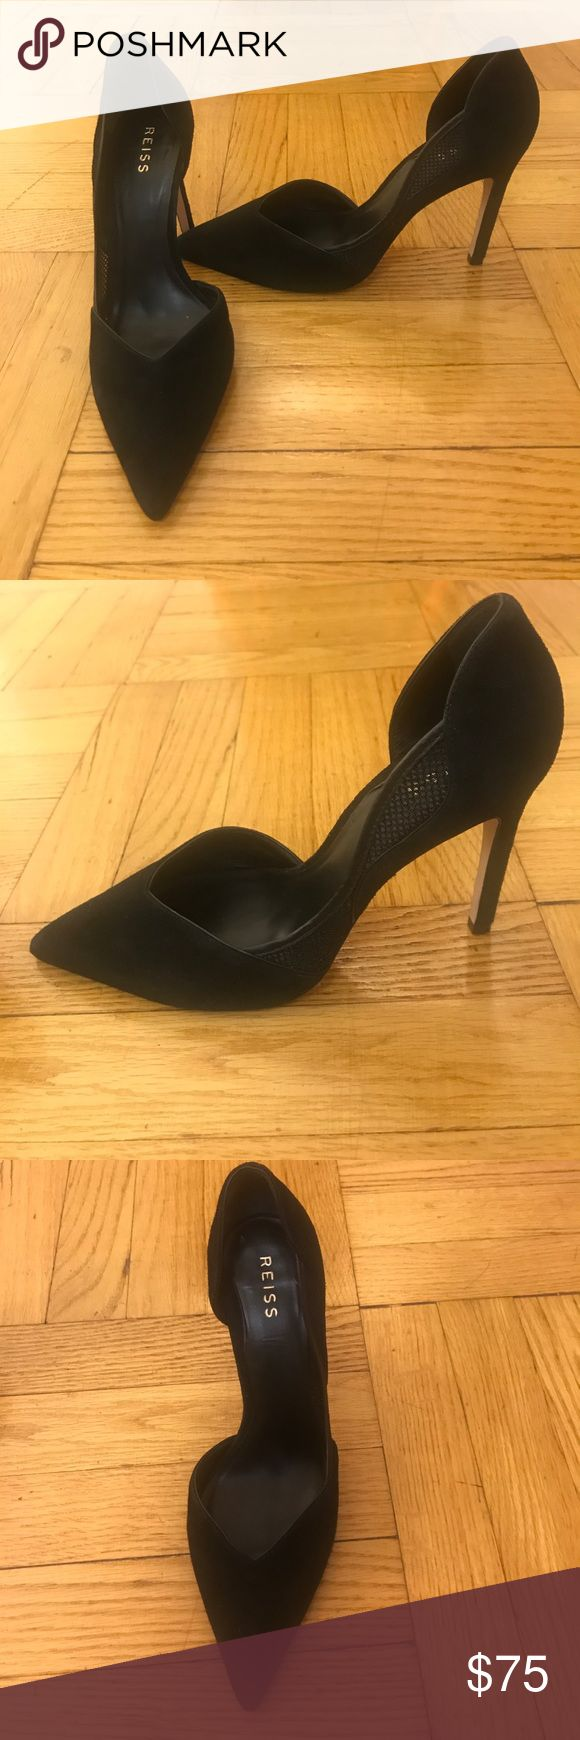 Reiss size 40 pumps, black suede with side detail Reiss size 40 pumps, black suede with side detail. Floor model, so slight wear but overall very good condition. Perfect for work or a night out! Reiss Shoes Heels